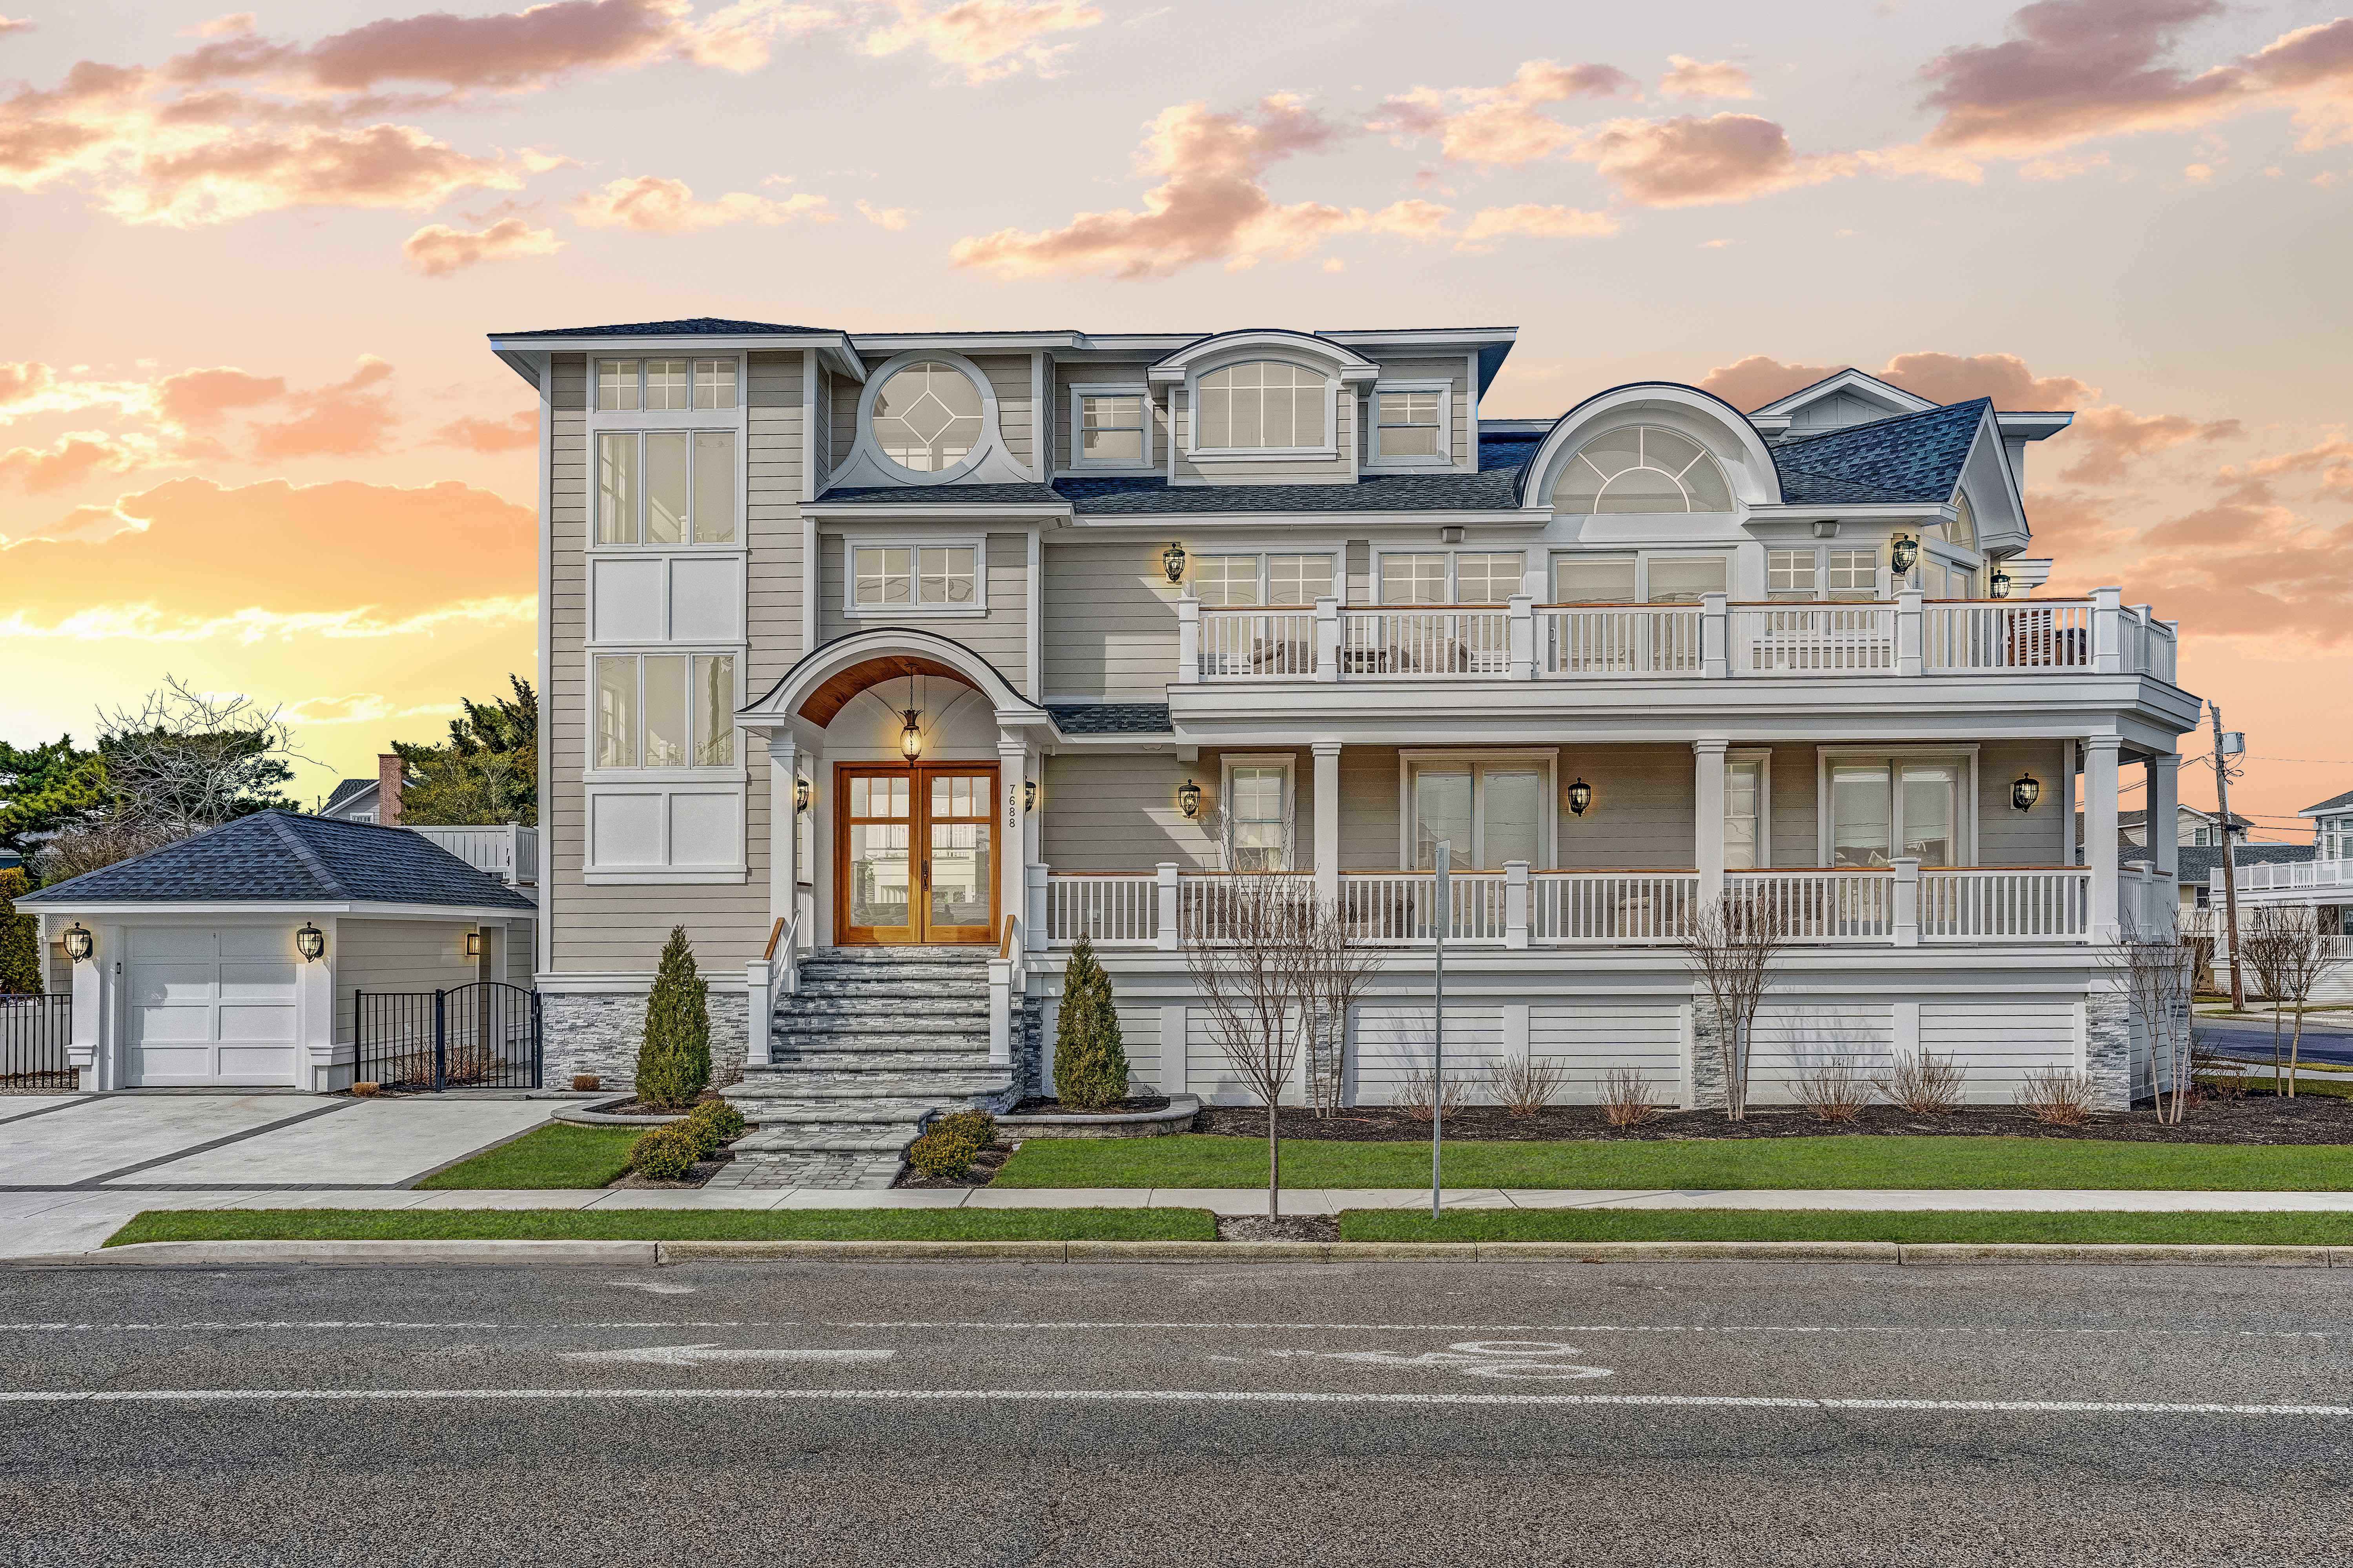 7688 Dune Drive - Avalon, NJ